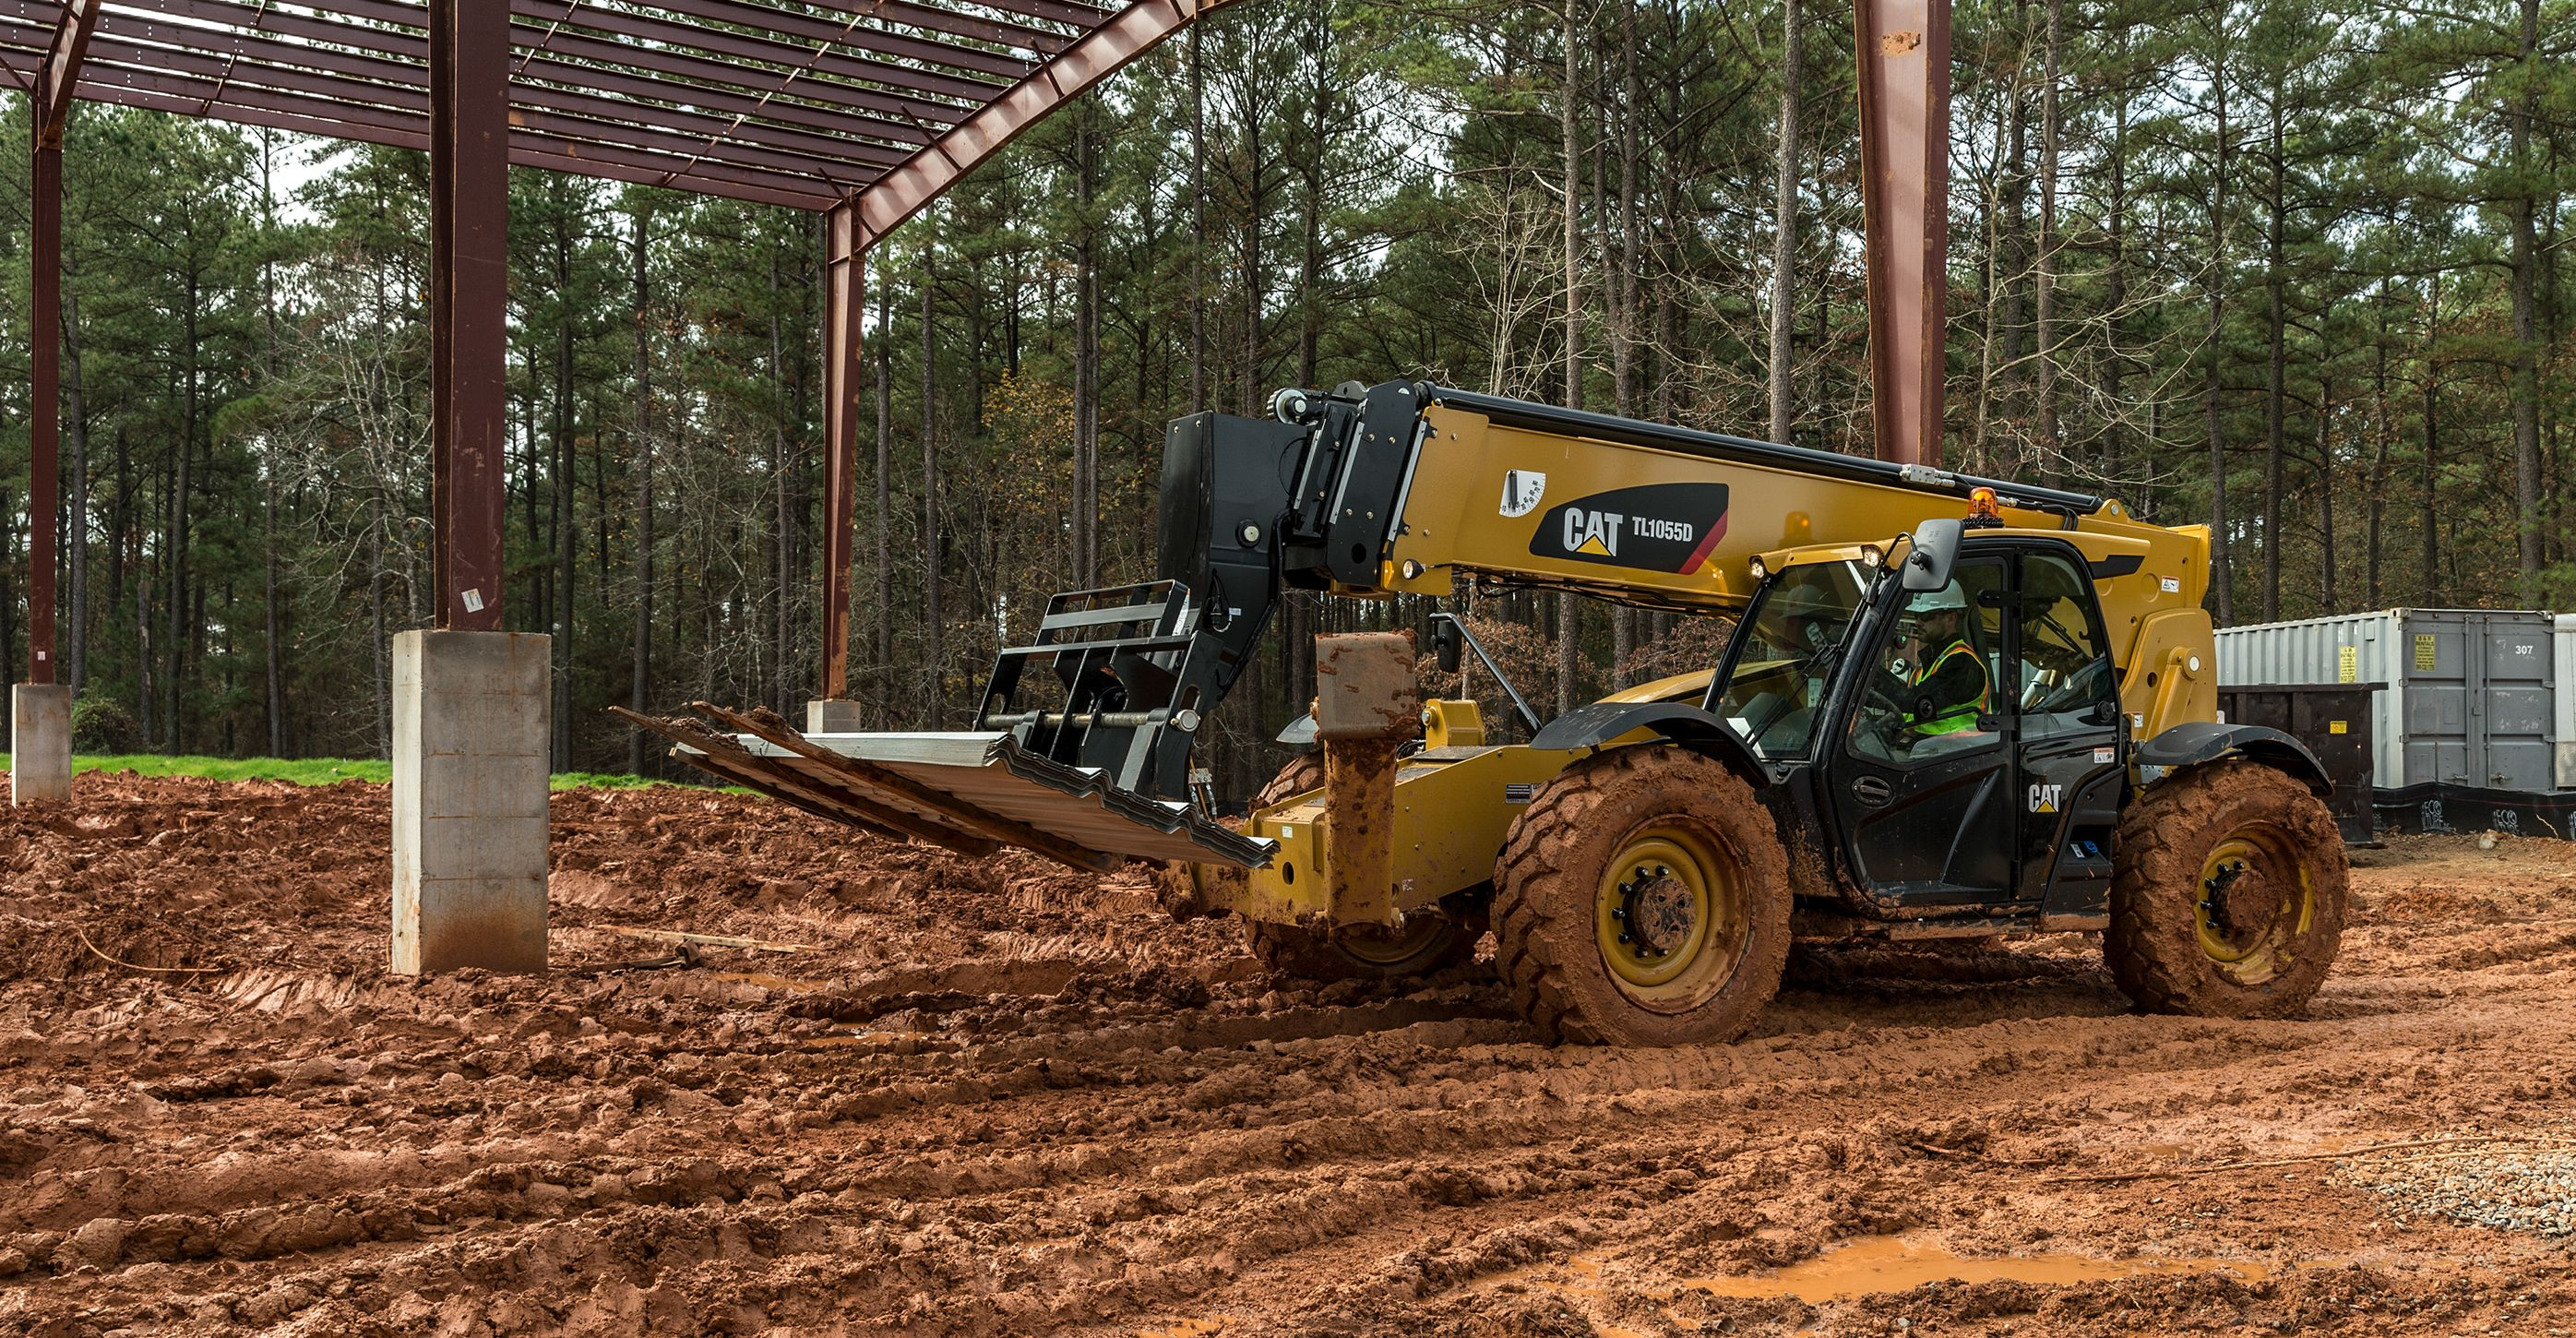 5 Tips and What To Look for When Buying a Used Telehandler